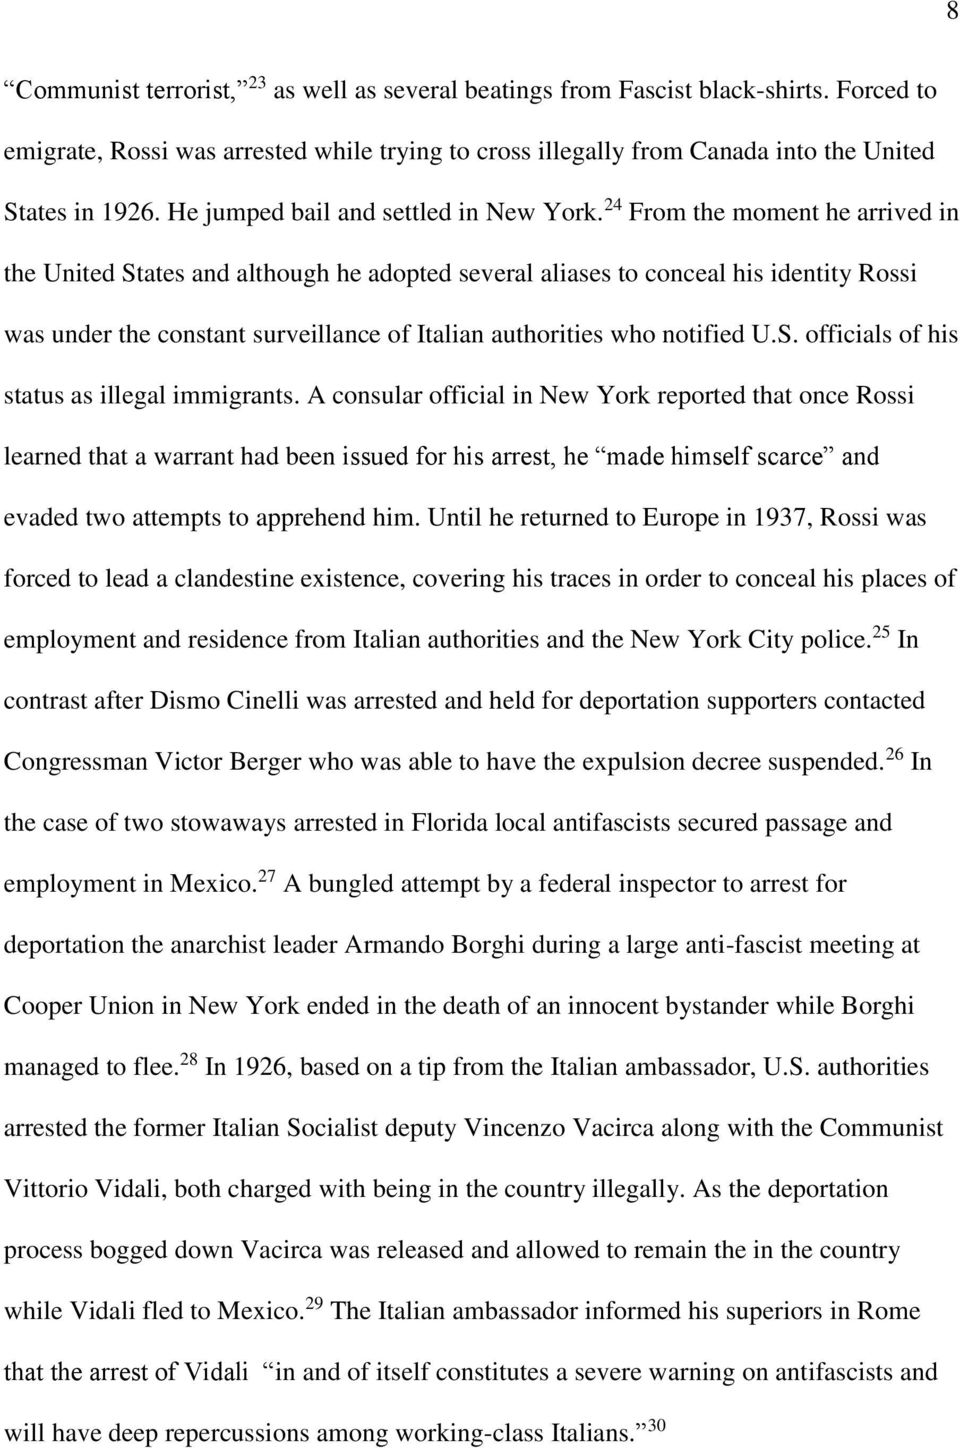 24 From the moment he arrived in the United States and although he adopted several aliases to conceal his identity Rossi was under the constant surveillance of Italian authorities who notified U.S. officials of his status as illegal immigrants.